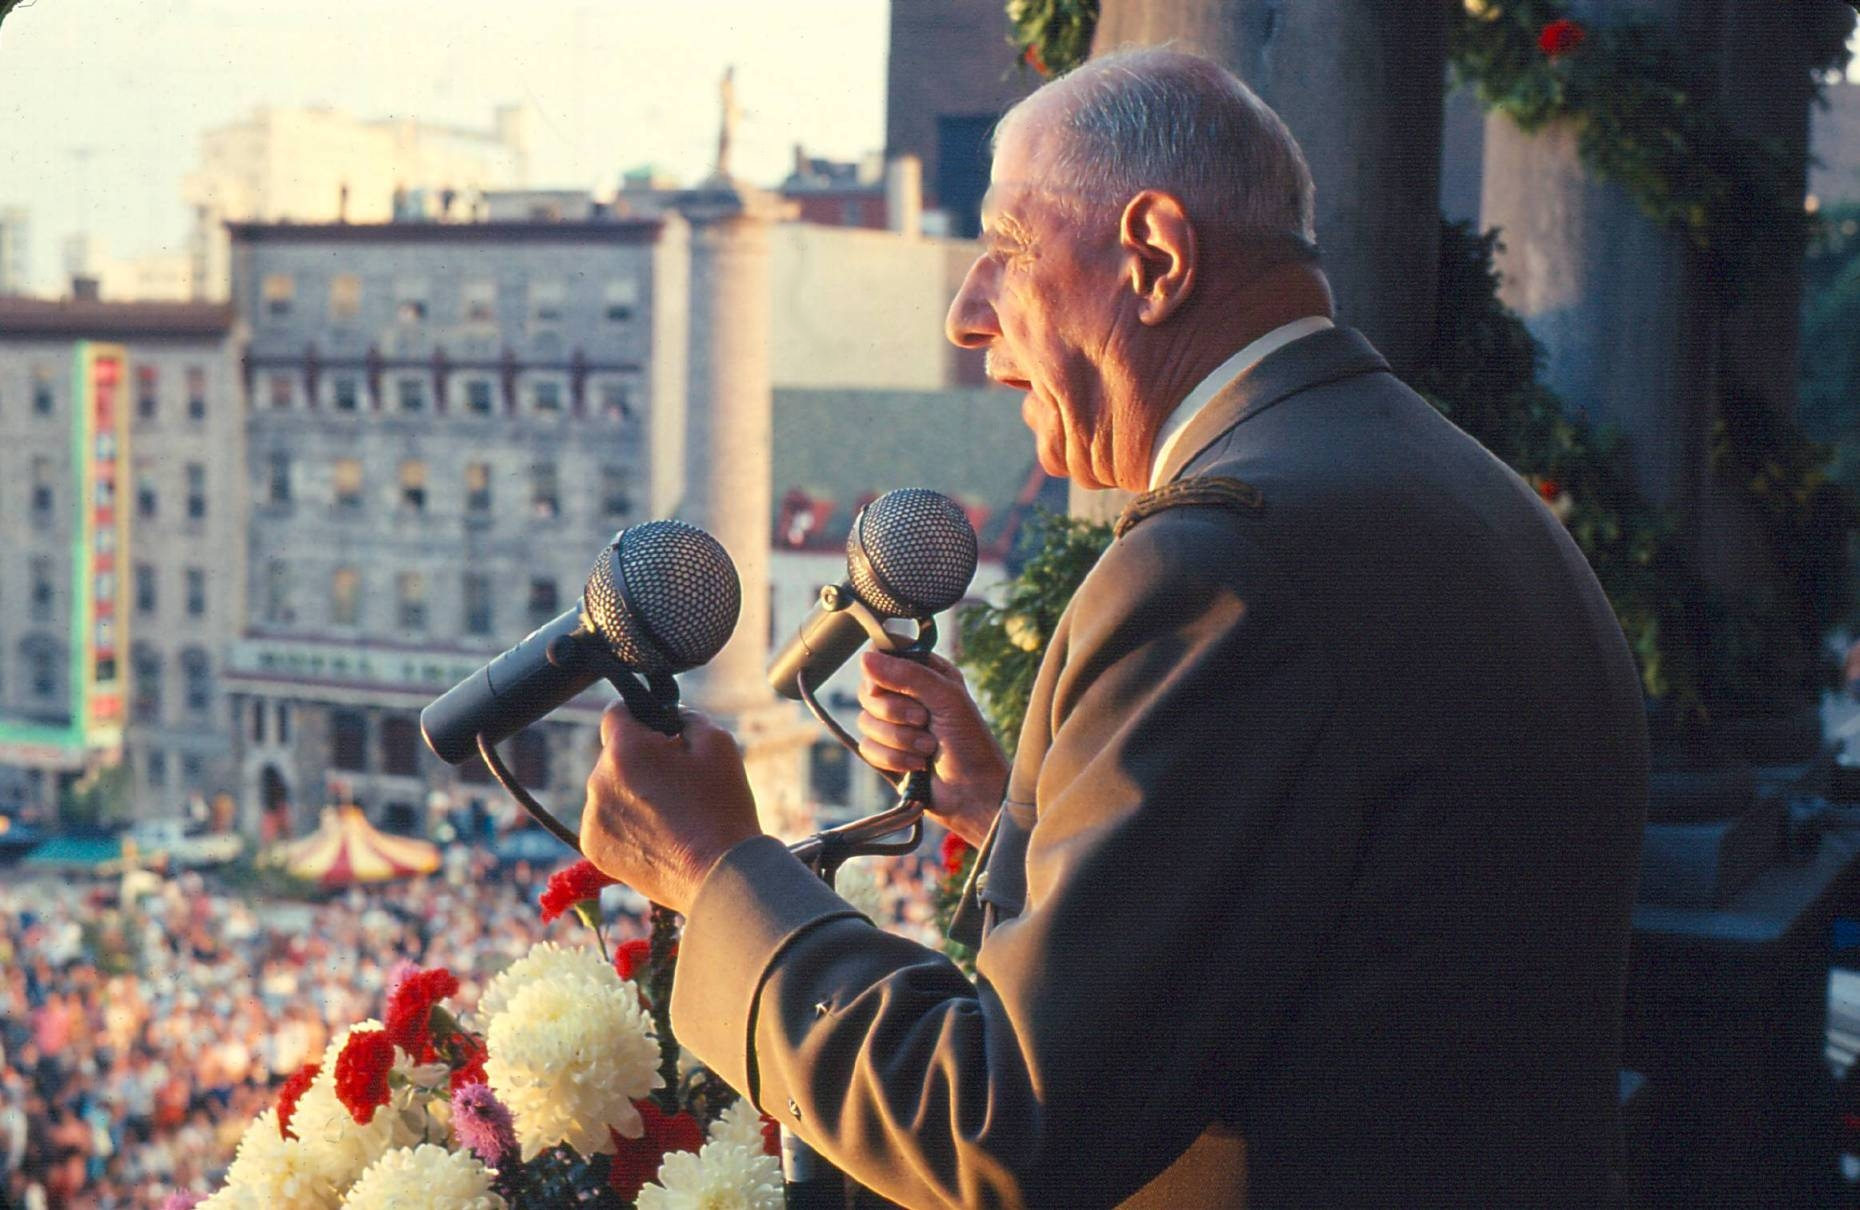 An older man on a balcony grips two microphones and addresses an unseen crowd on the street.